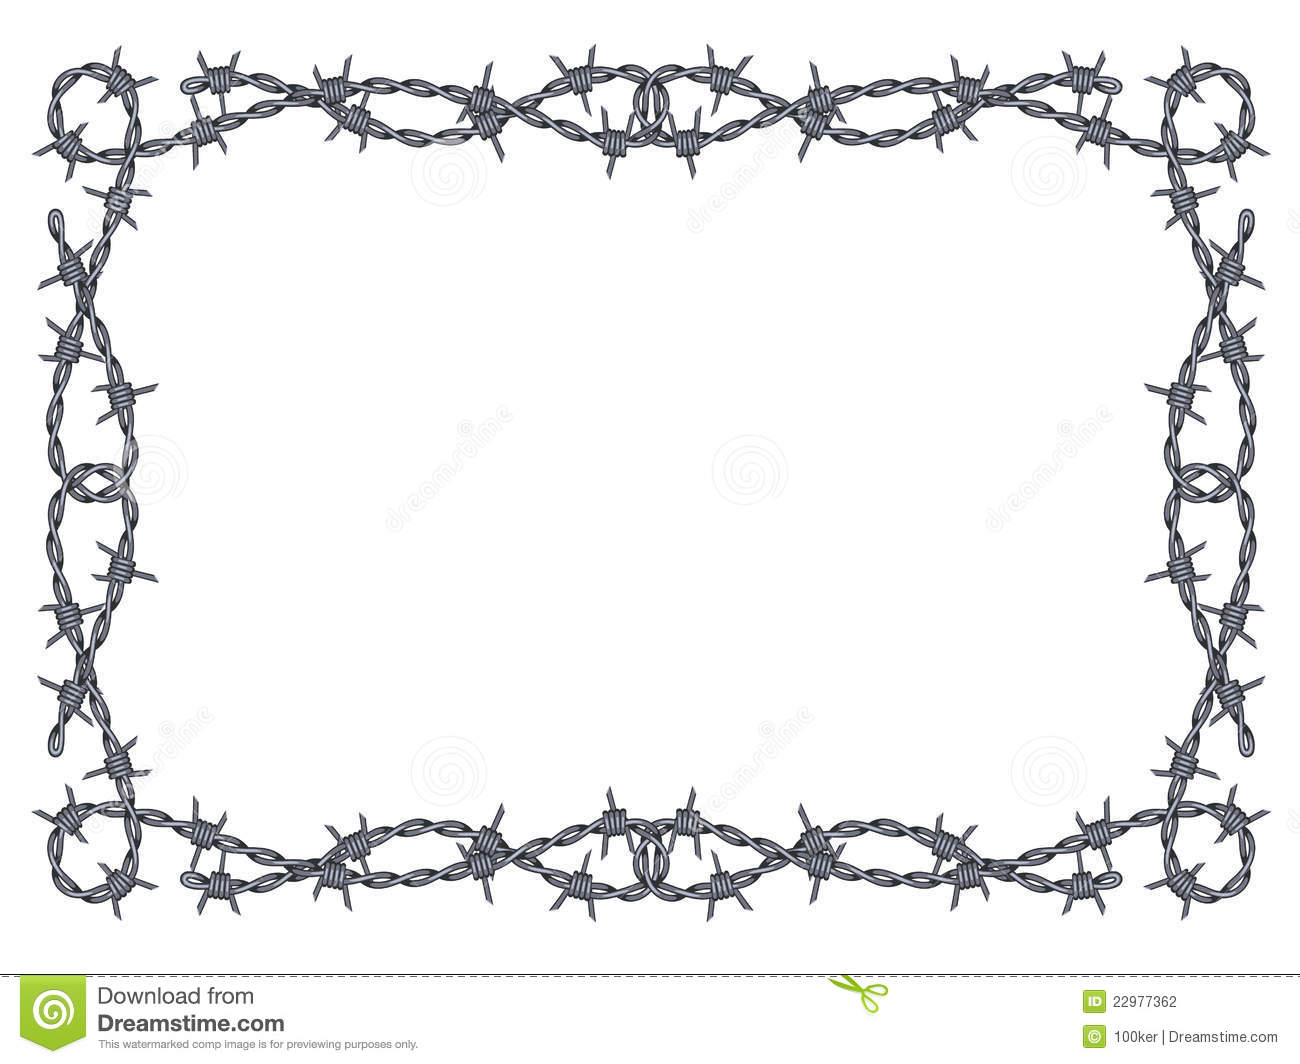 Barbed wire vector brush - Barbed Frame Isolated Pattern White Wire